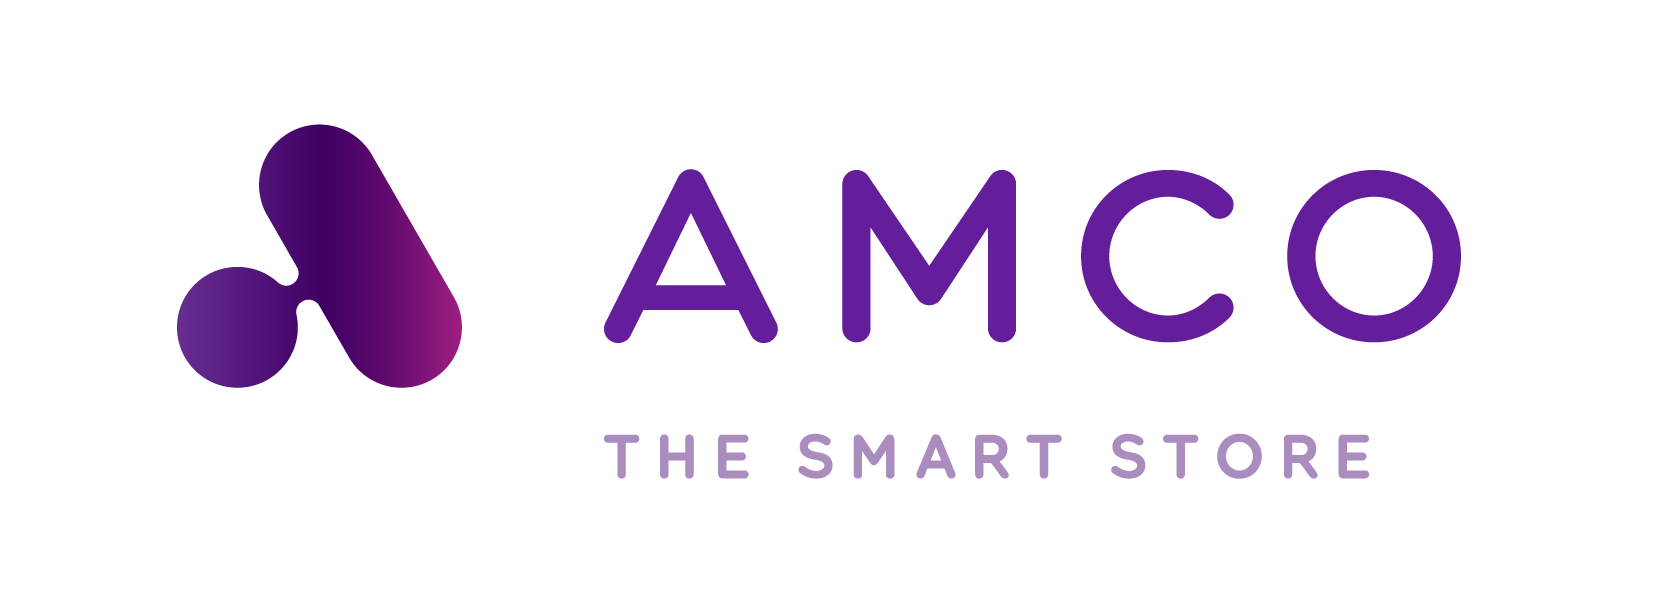 Amco - Global distribution partner in consumer electronics